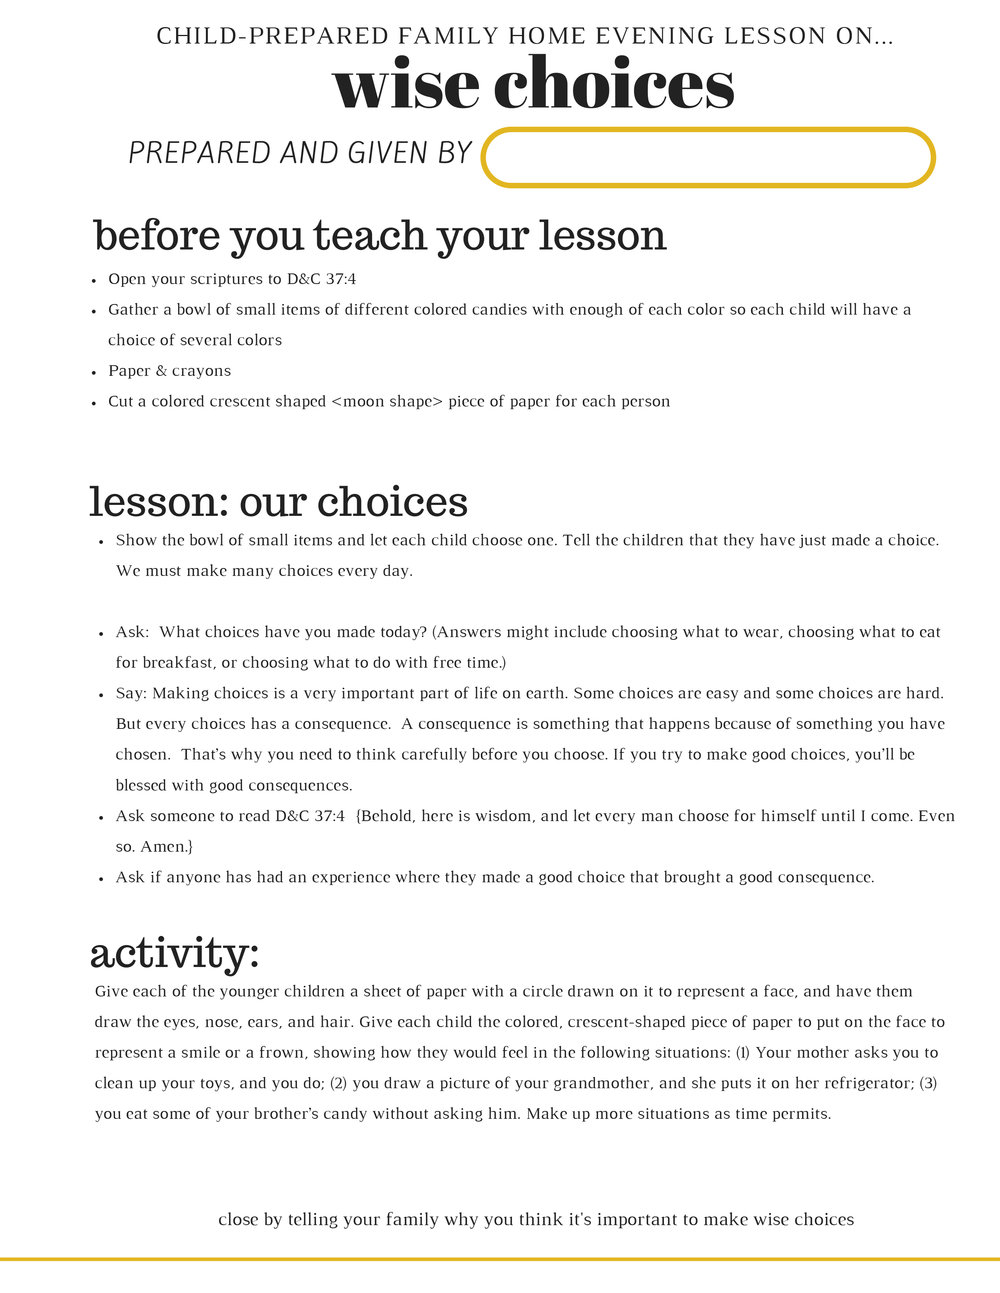 FREE PRINTABLE FHE LESSON ON MAKING WISE CHOICES